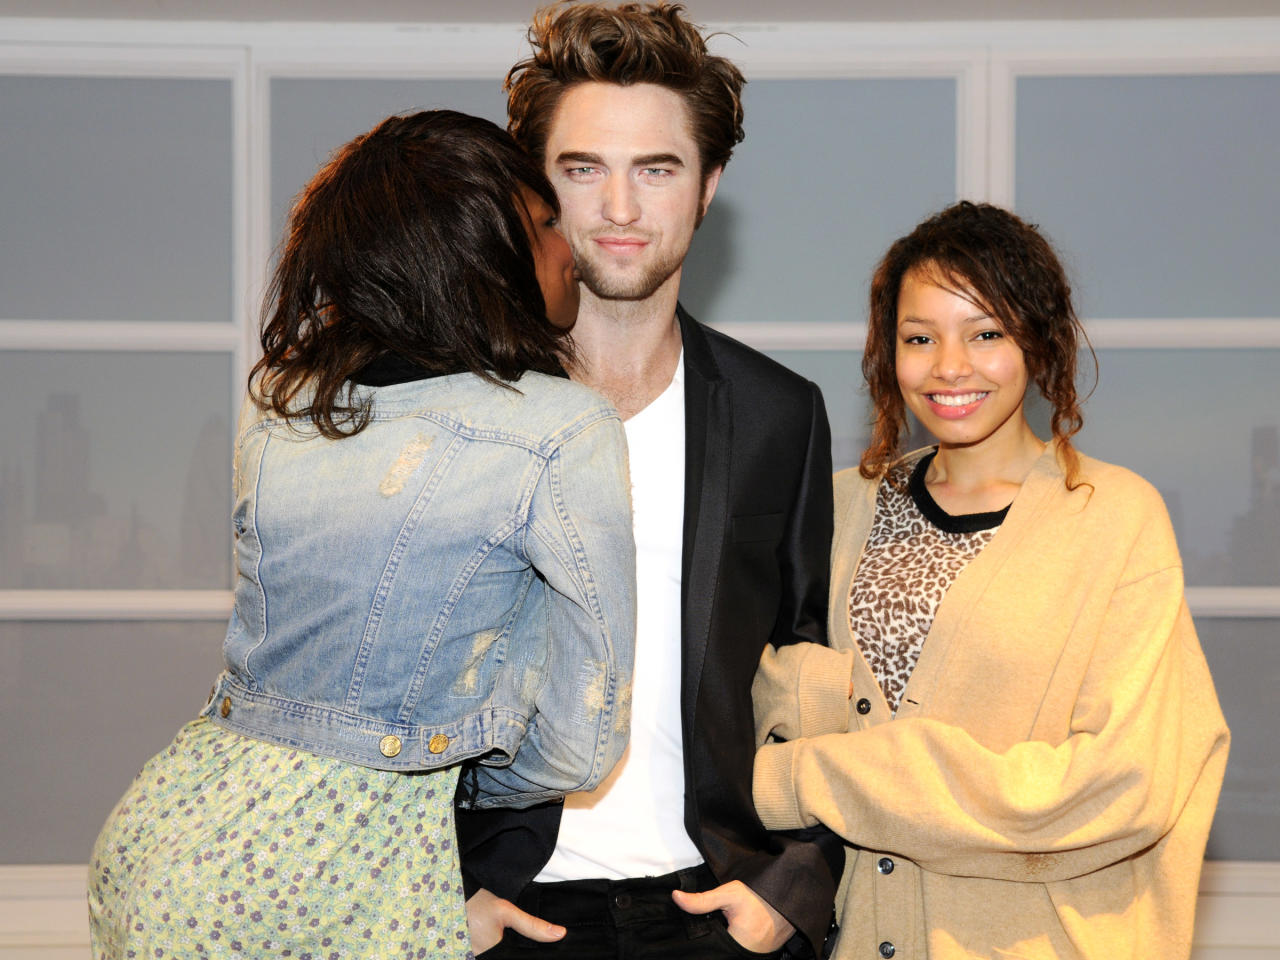 Visitors pose for a photograph with a wax figure of British actor Robert Pattinson in a VIP section of Madame Tussauds London, after being installed for the first time, in London March 25, 2010.   REUTERS/Madame Tussauds London/Handout